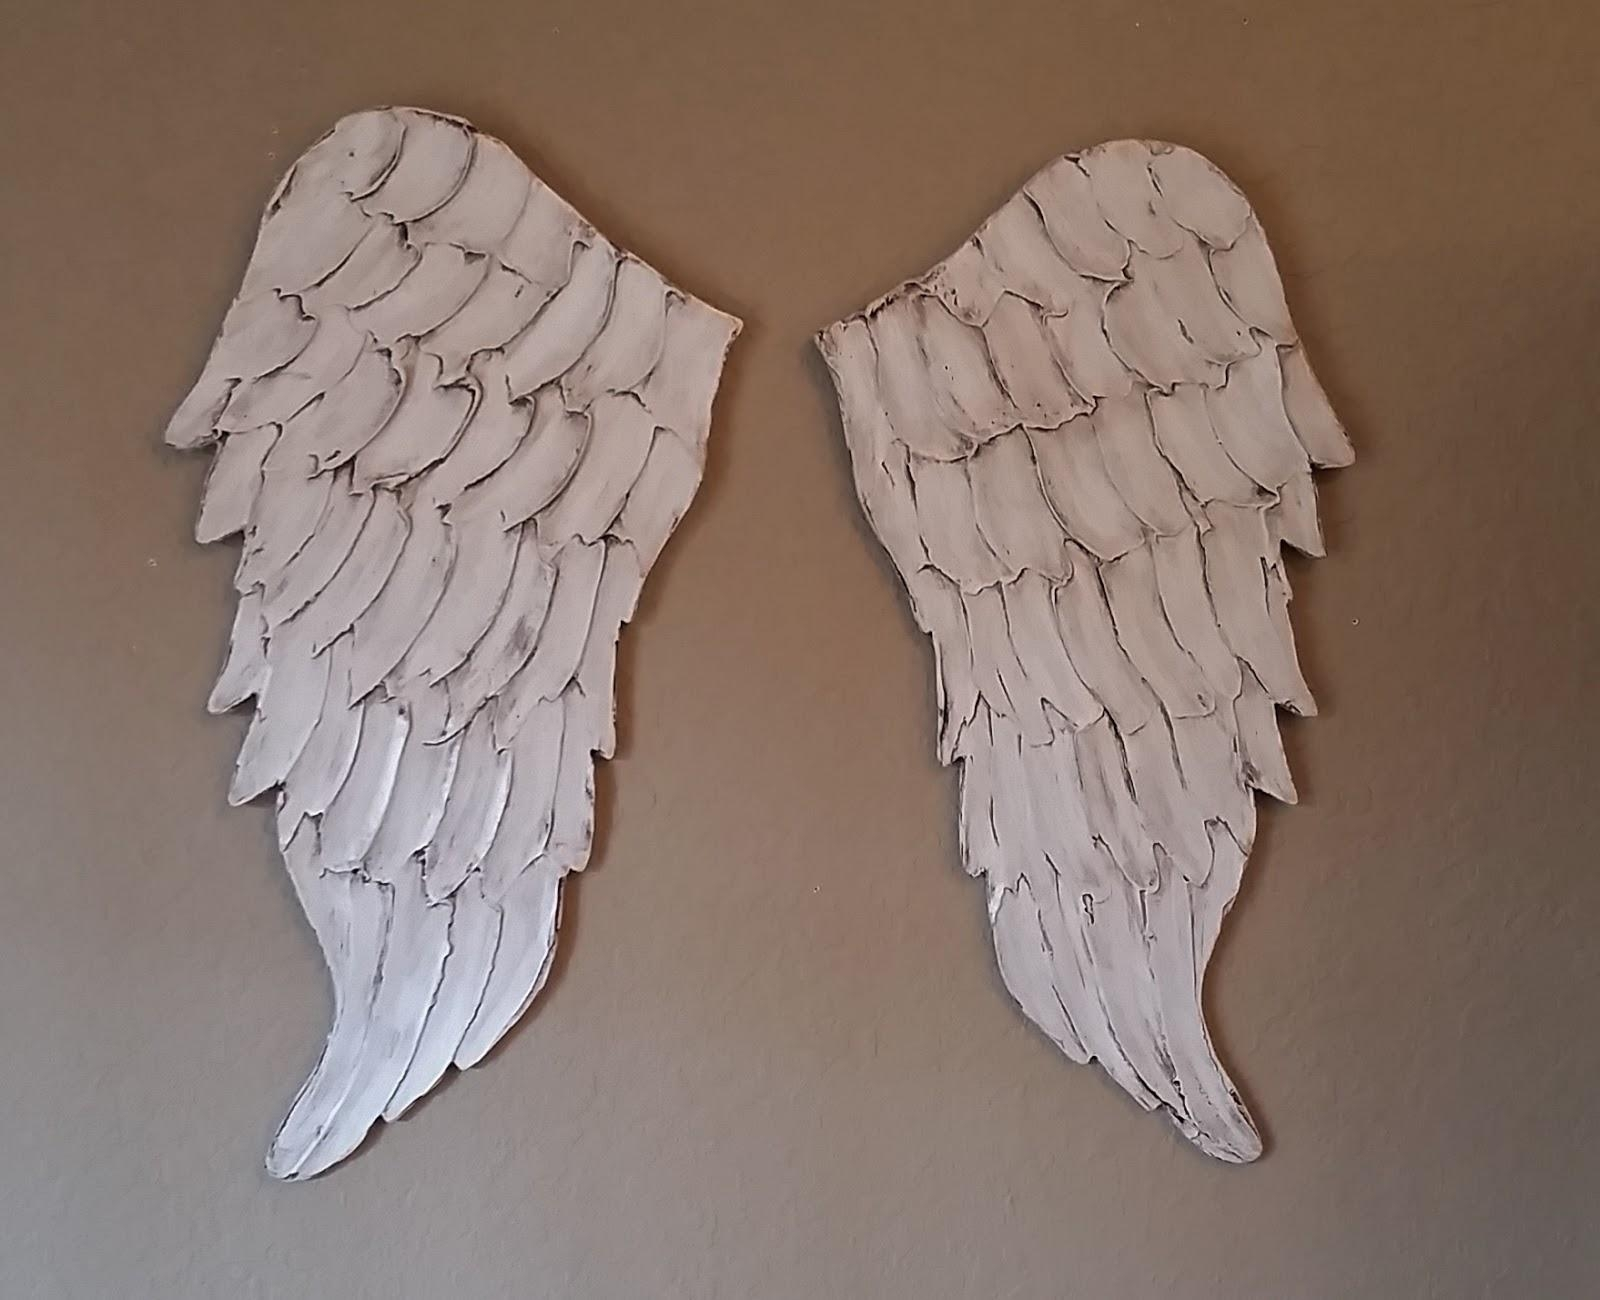 Angel Wing Wall Art, Carved Wood Look | Lucy Designs With Regard To Angel Wing Wall Art (View 18 of 20)